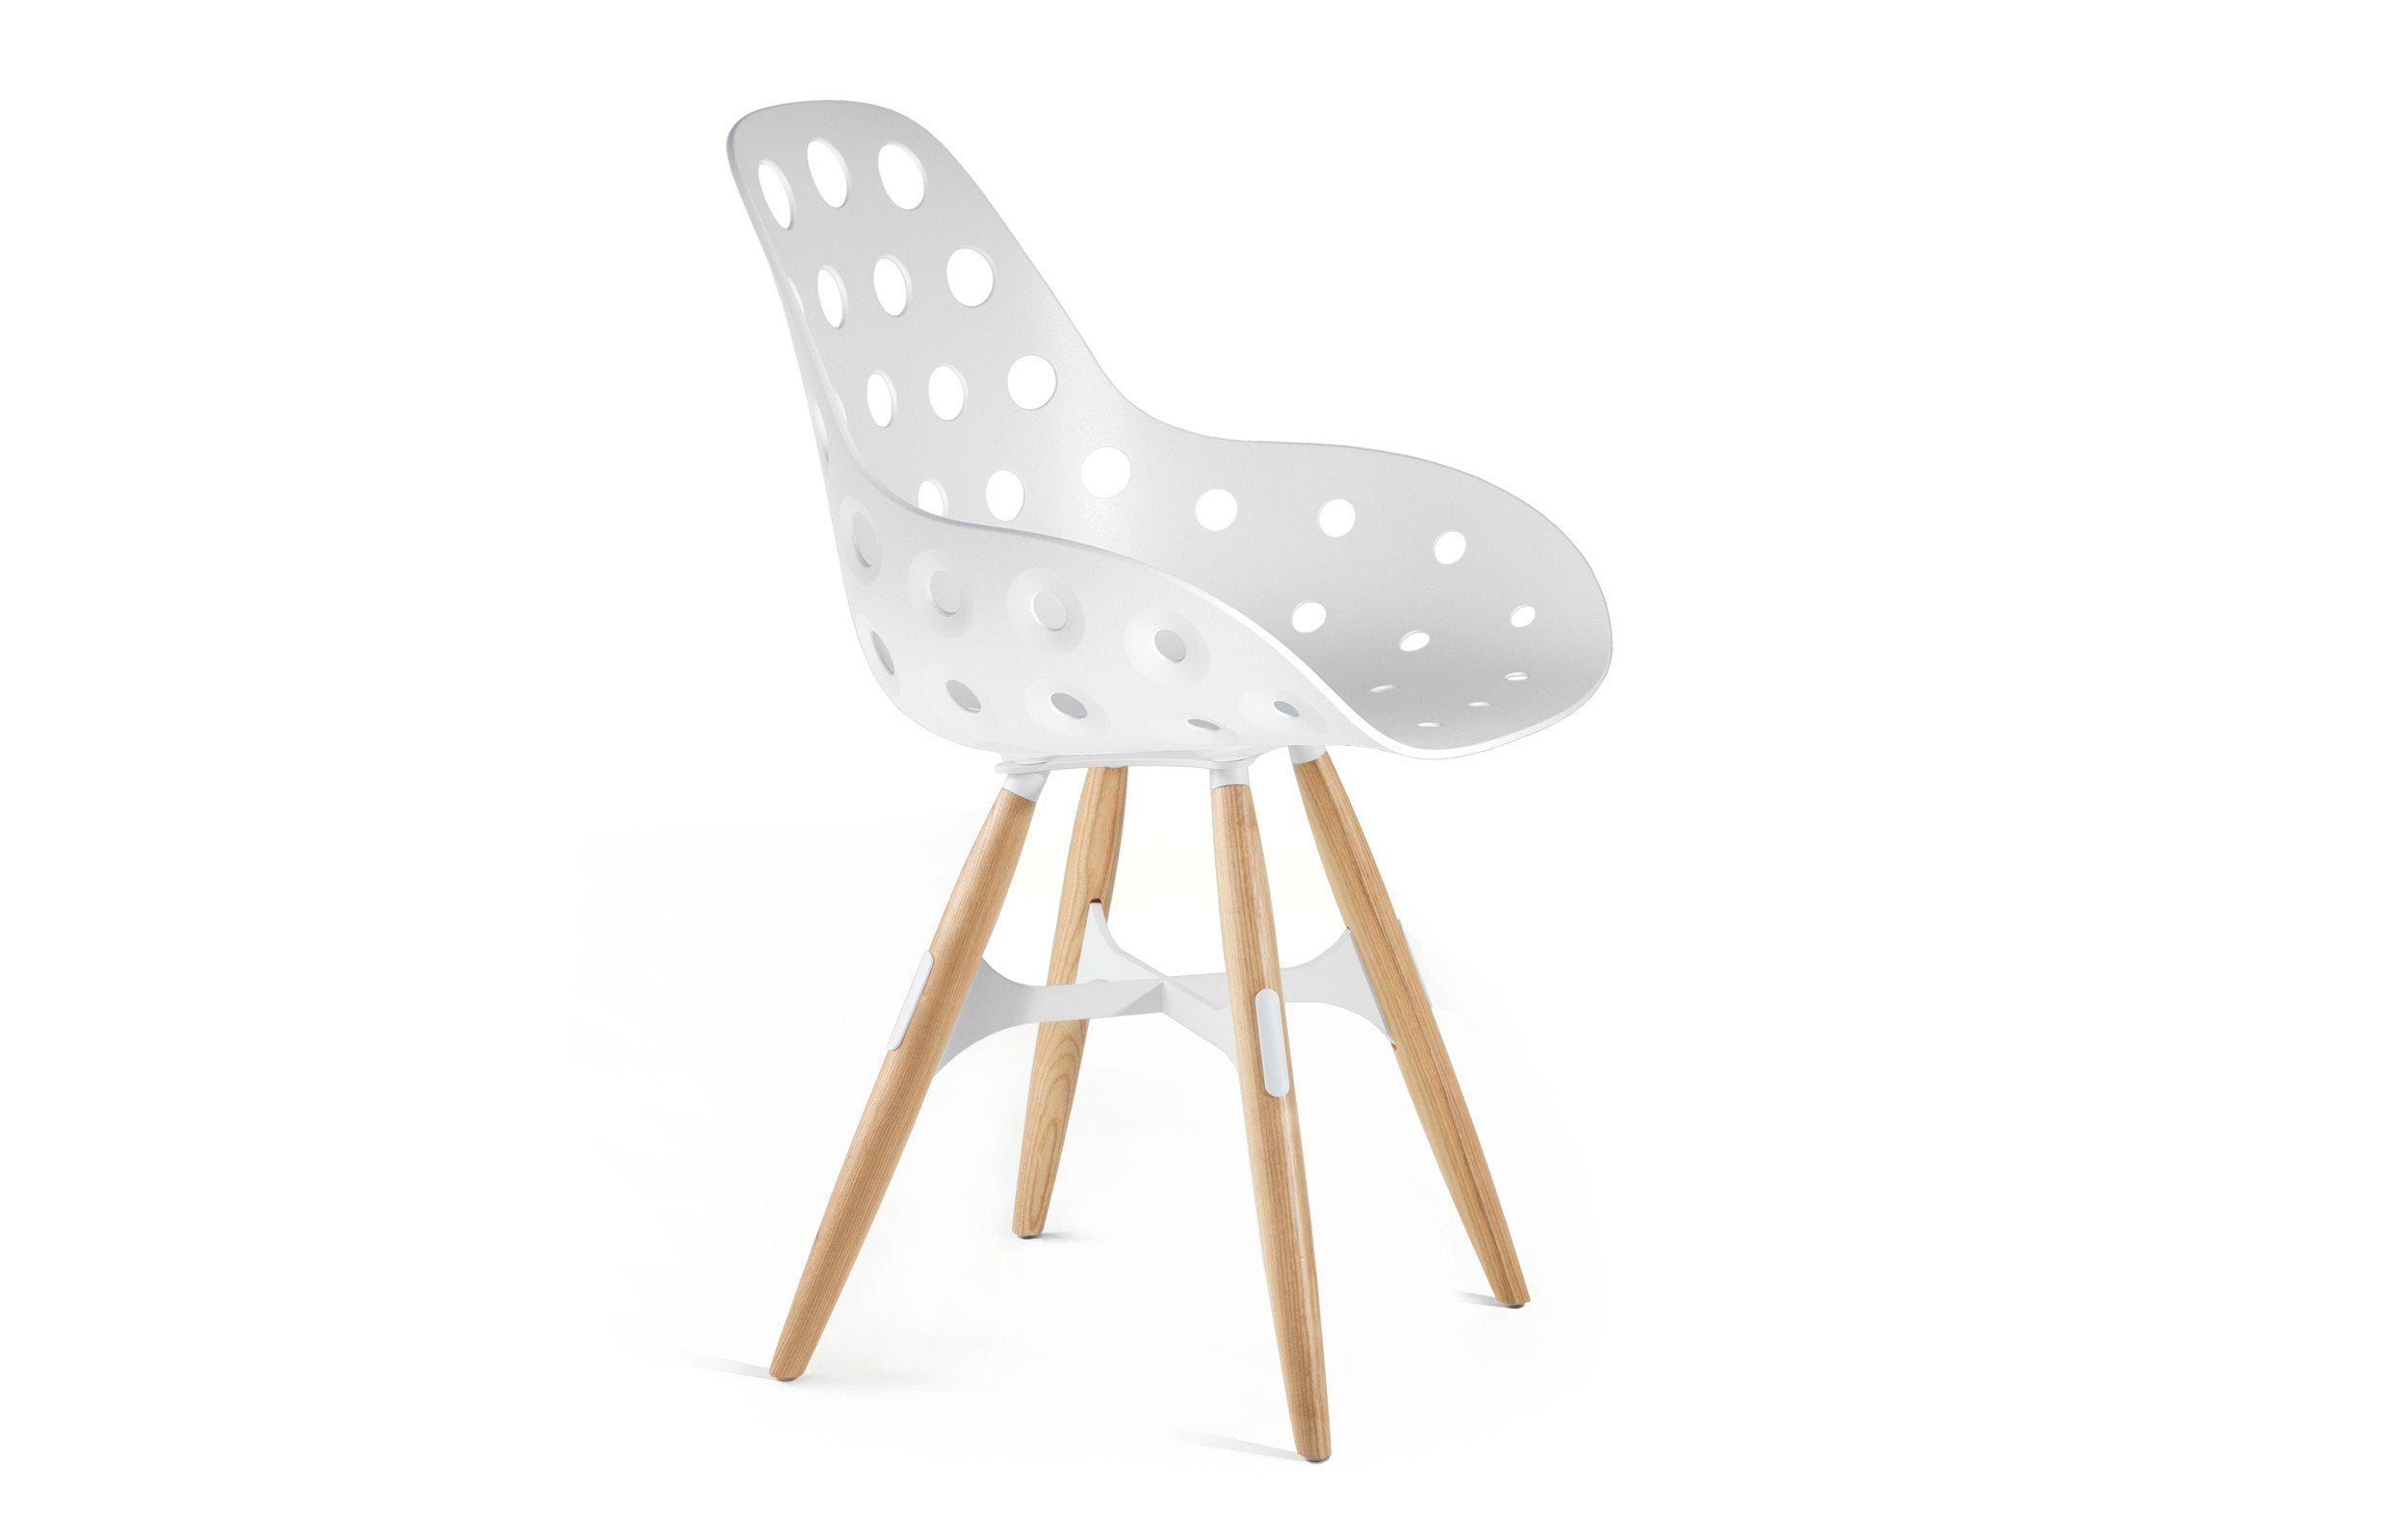 Kubikoff ZigZag Dimple Chair Black No Seat Pad White Powder Coated Metal + Natural Ash